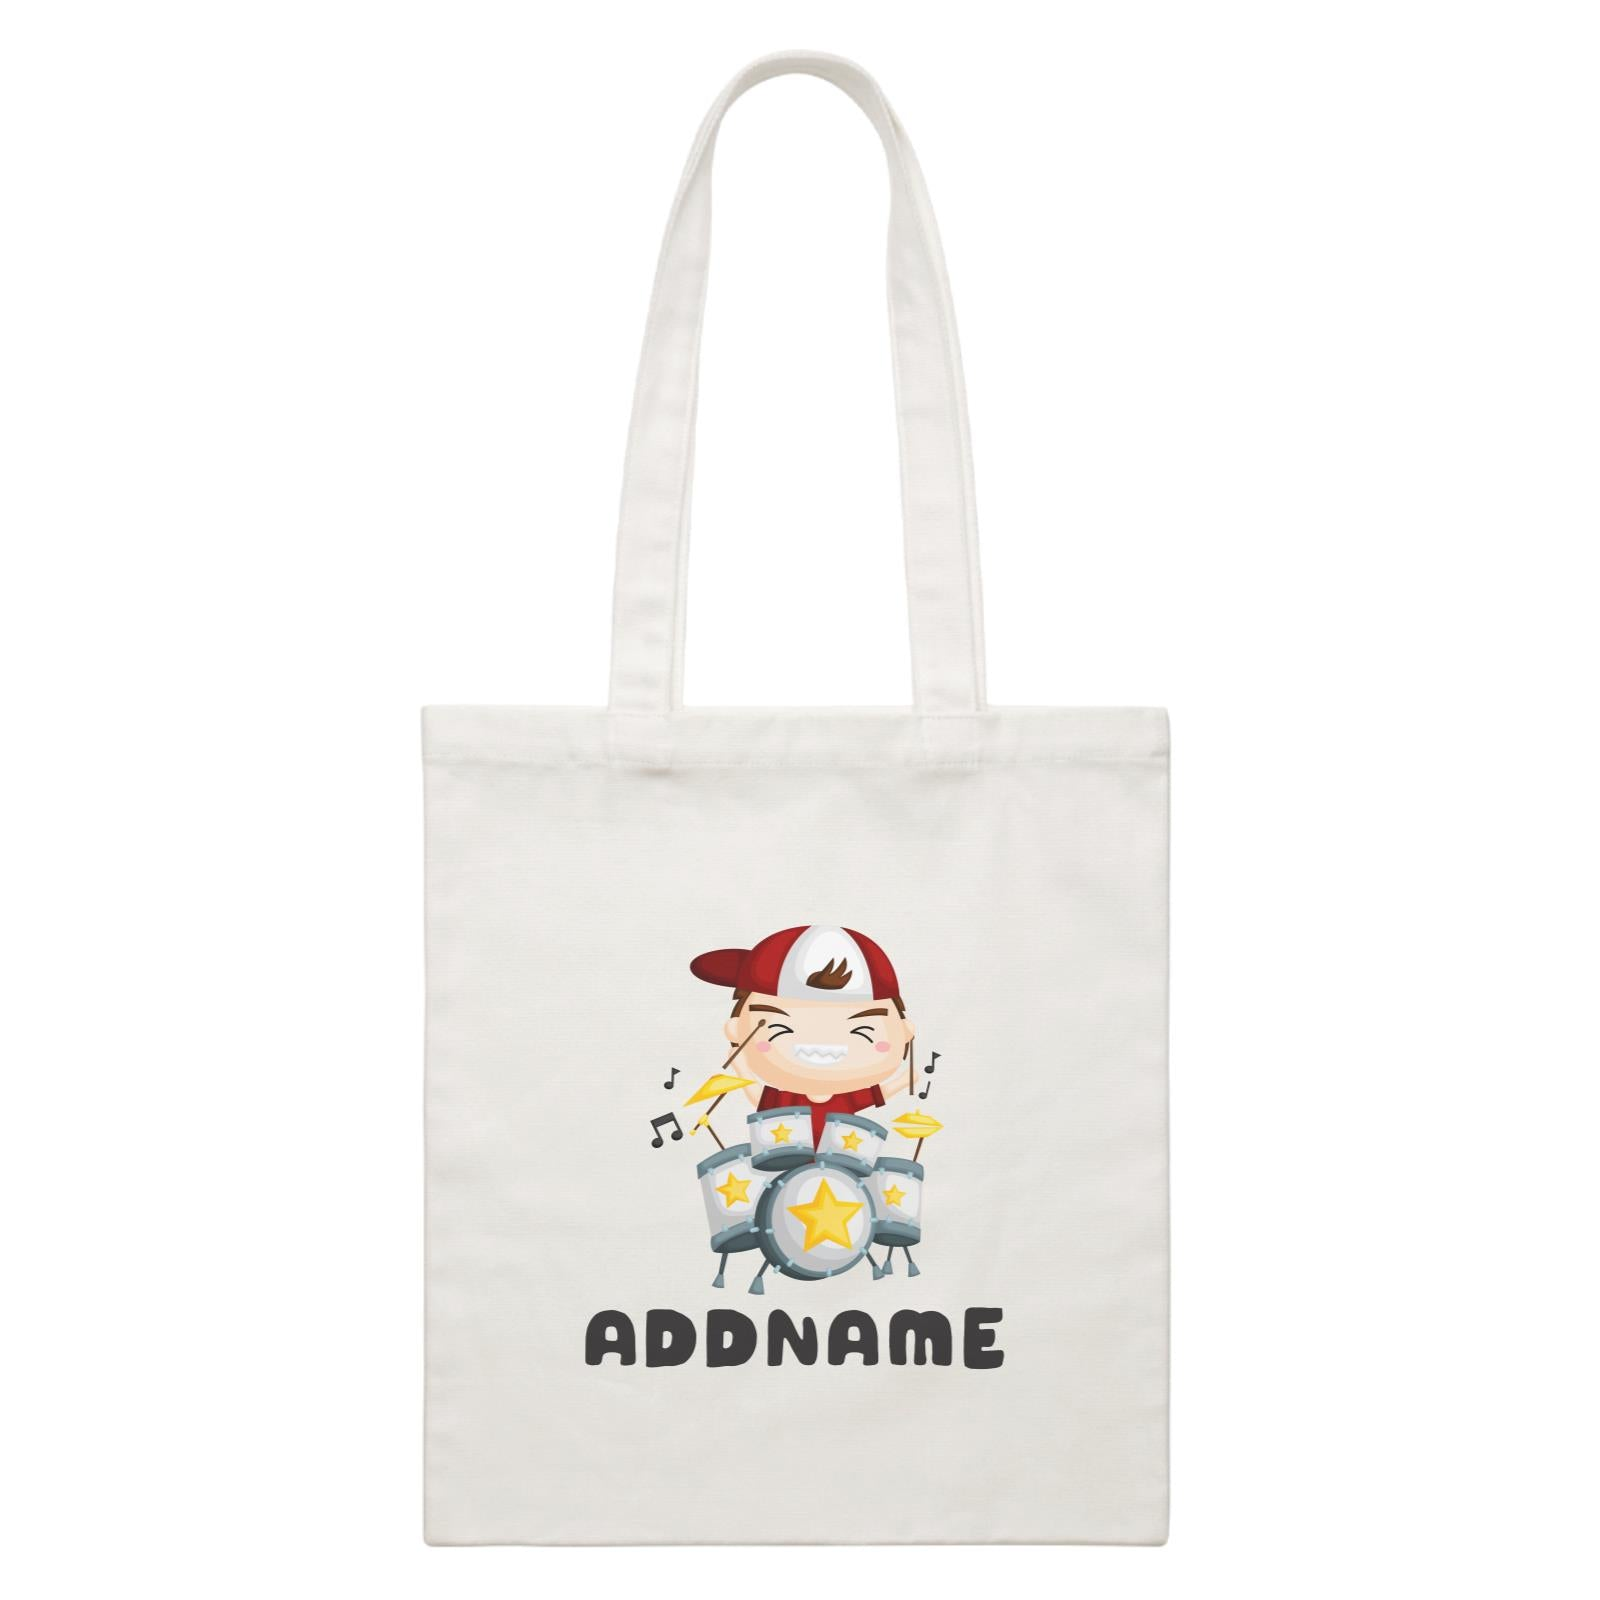 Birthday Music Band Boy Playing Drums Addname White Canvas Bag